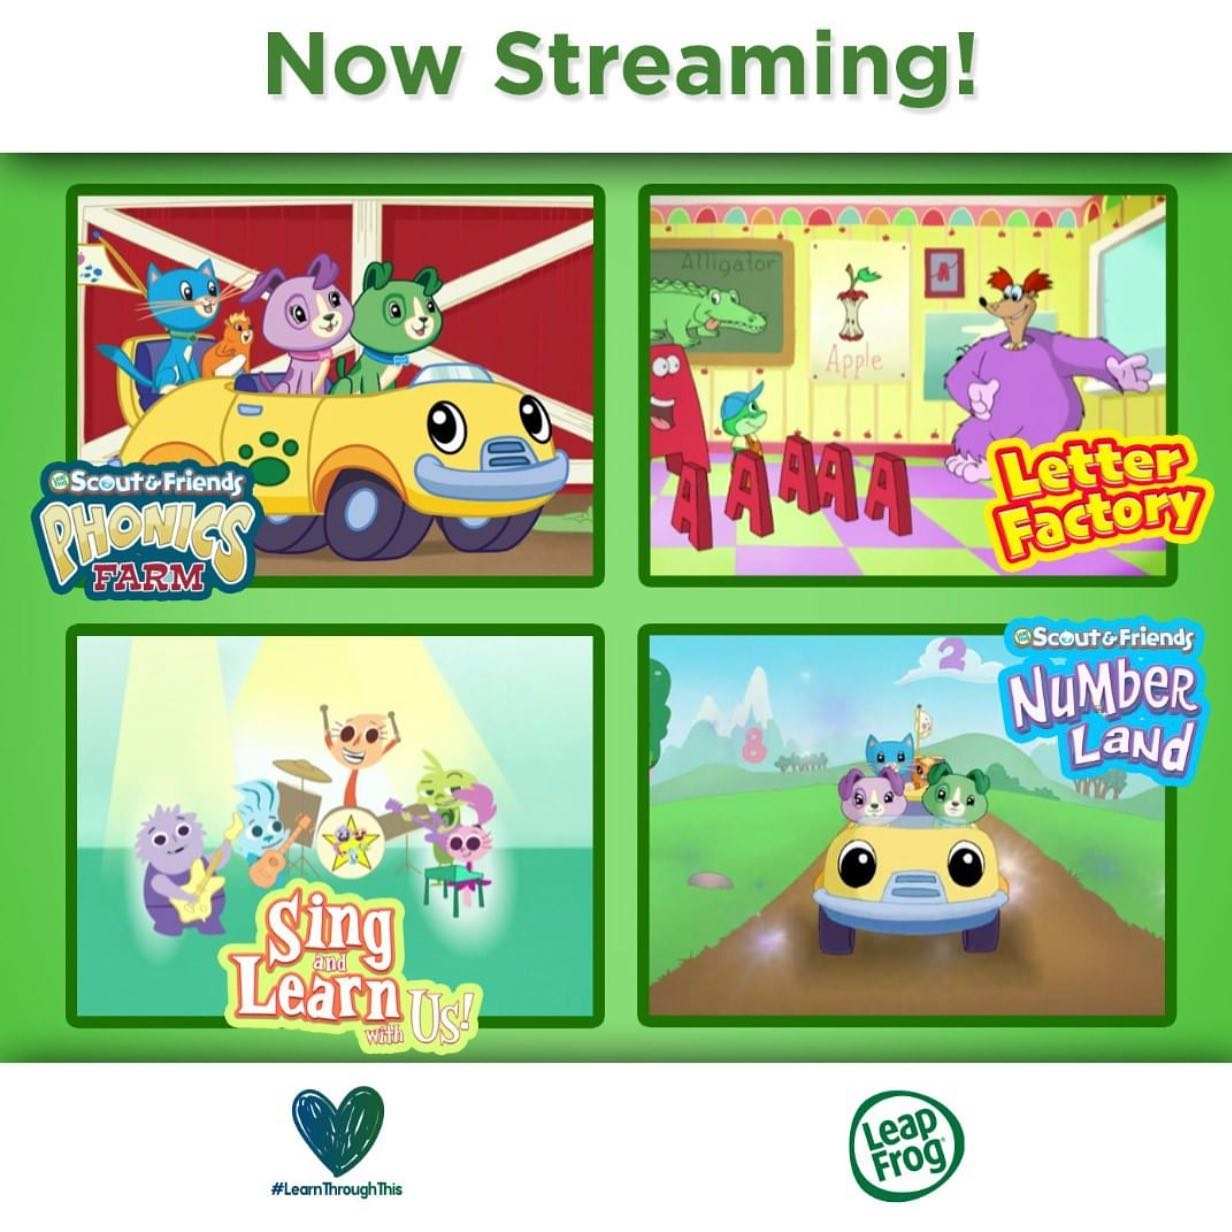 Leapfrog Canada On Twitter Steaming Now On Netflix You Can Now Watch Our Classic Leapfrog Videos Scout Friends Letter Factory Phonics Farm And More Are Now Available Netflix Scoutandfriends Learnthroughthis Https T Co Mjqa3mcgkm